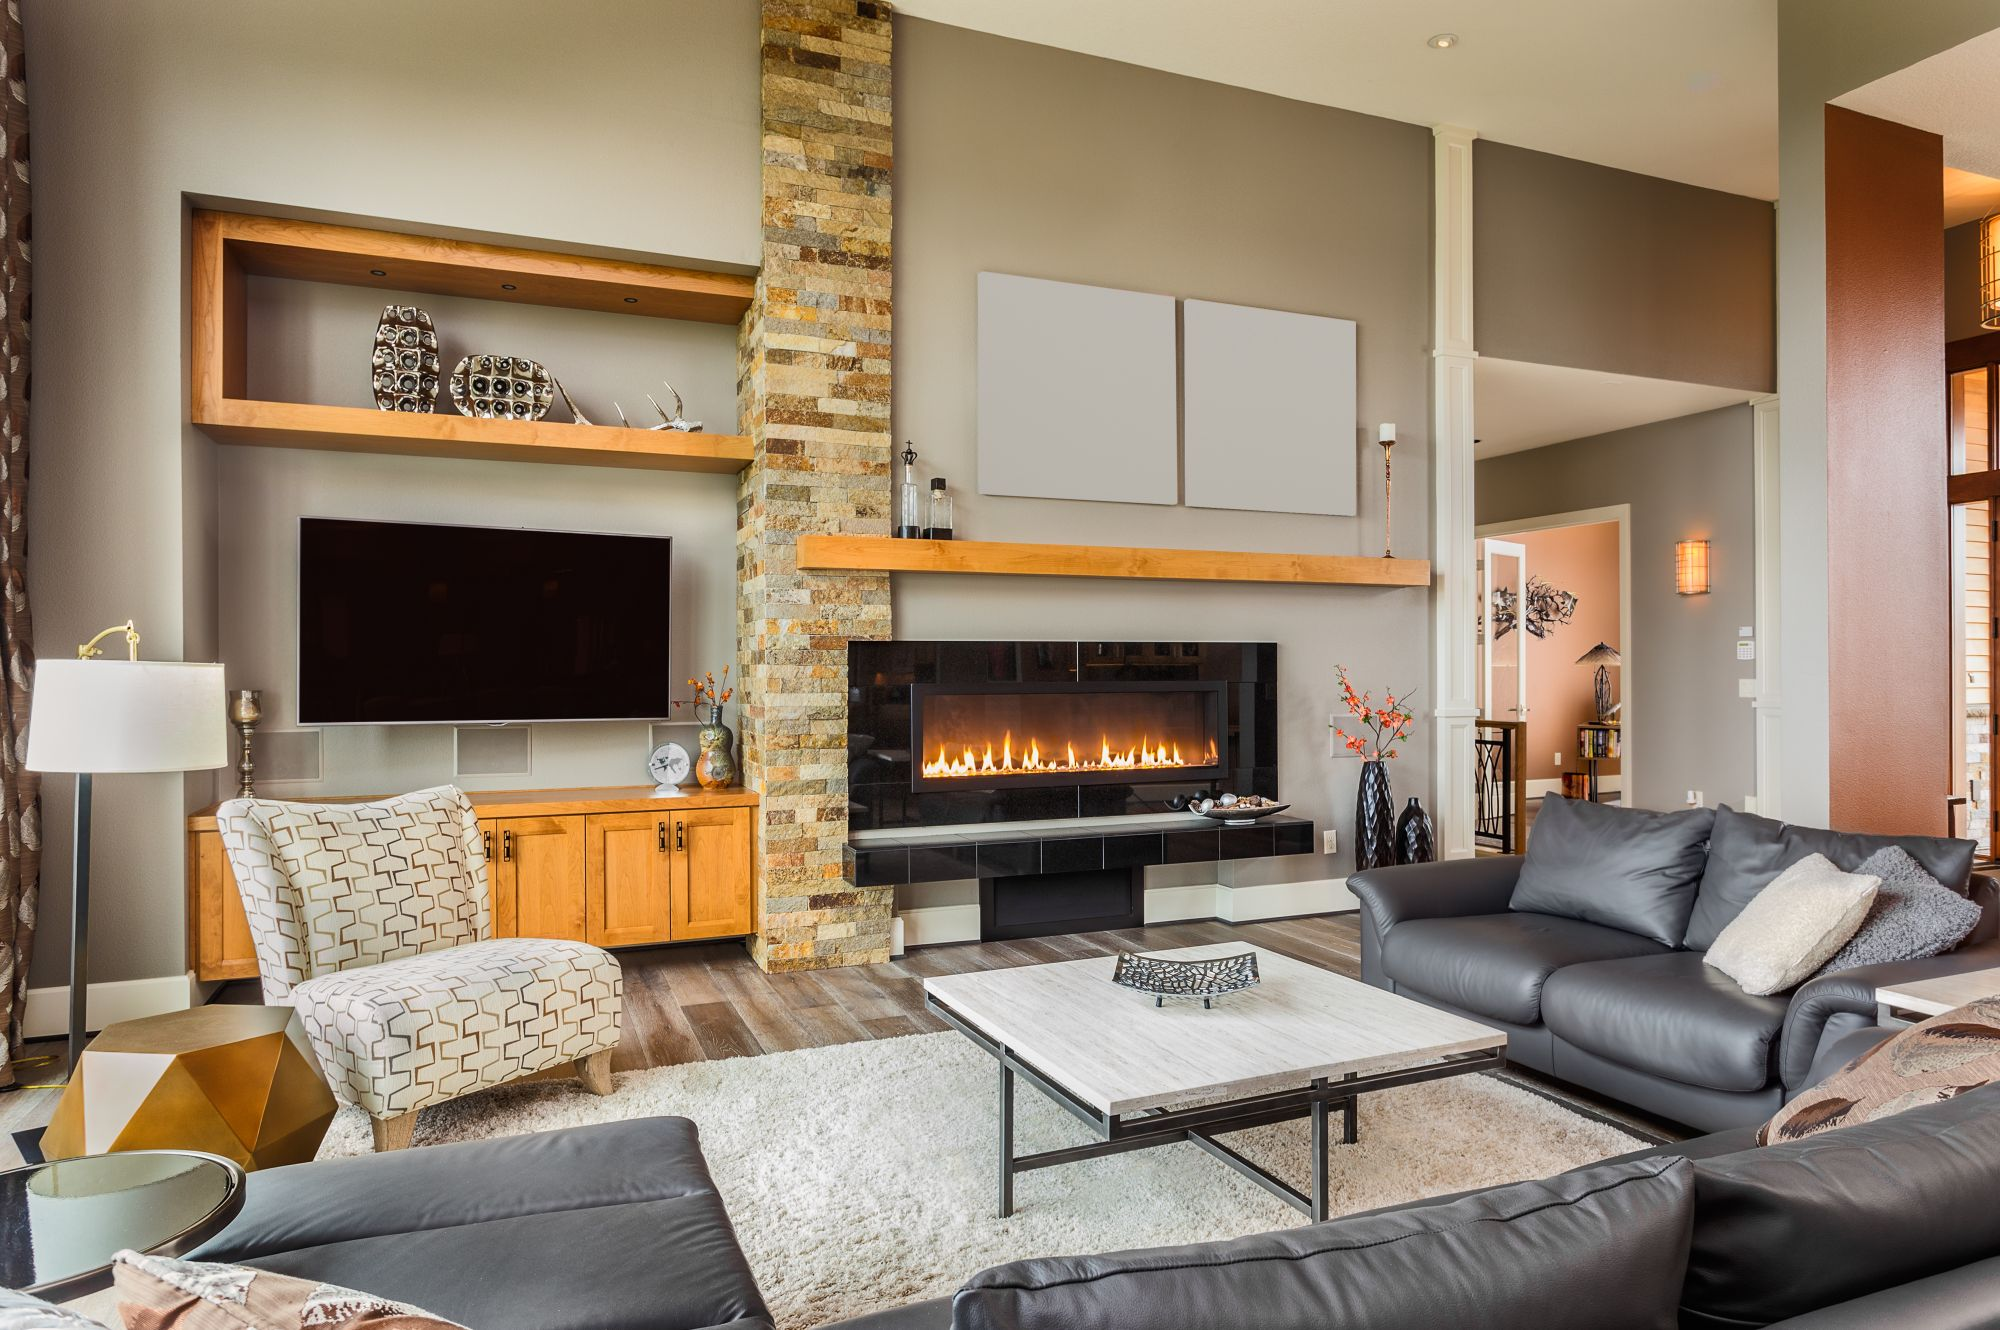 RE- Home Staging